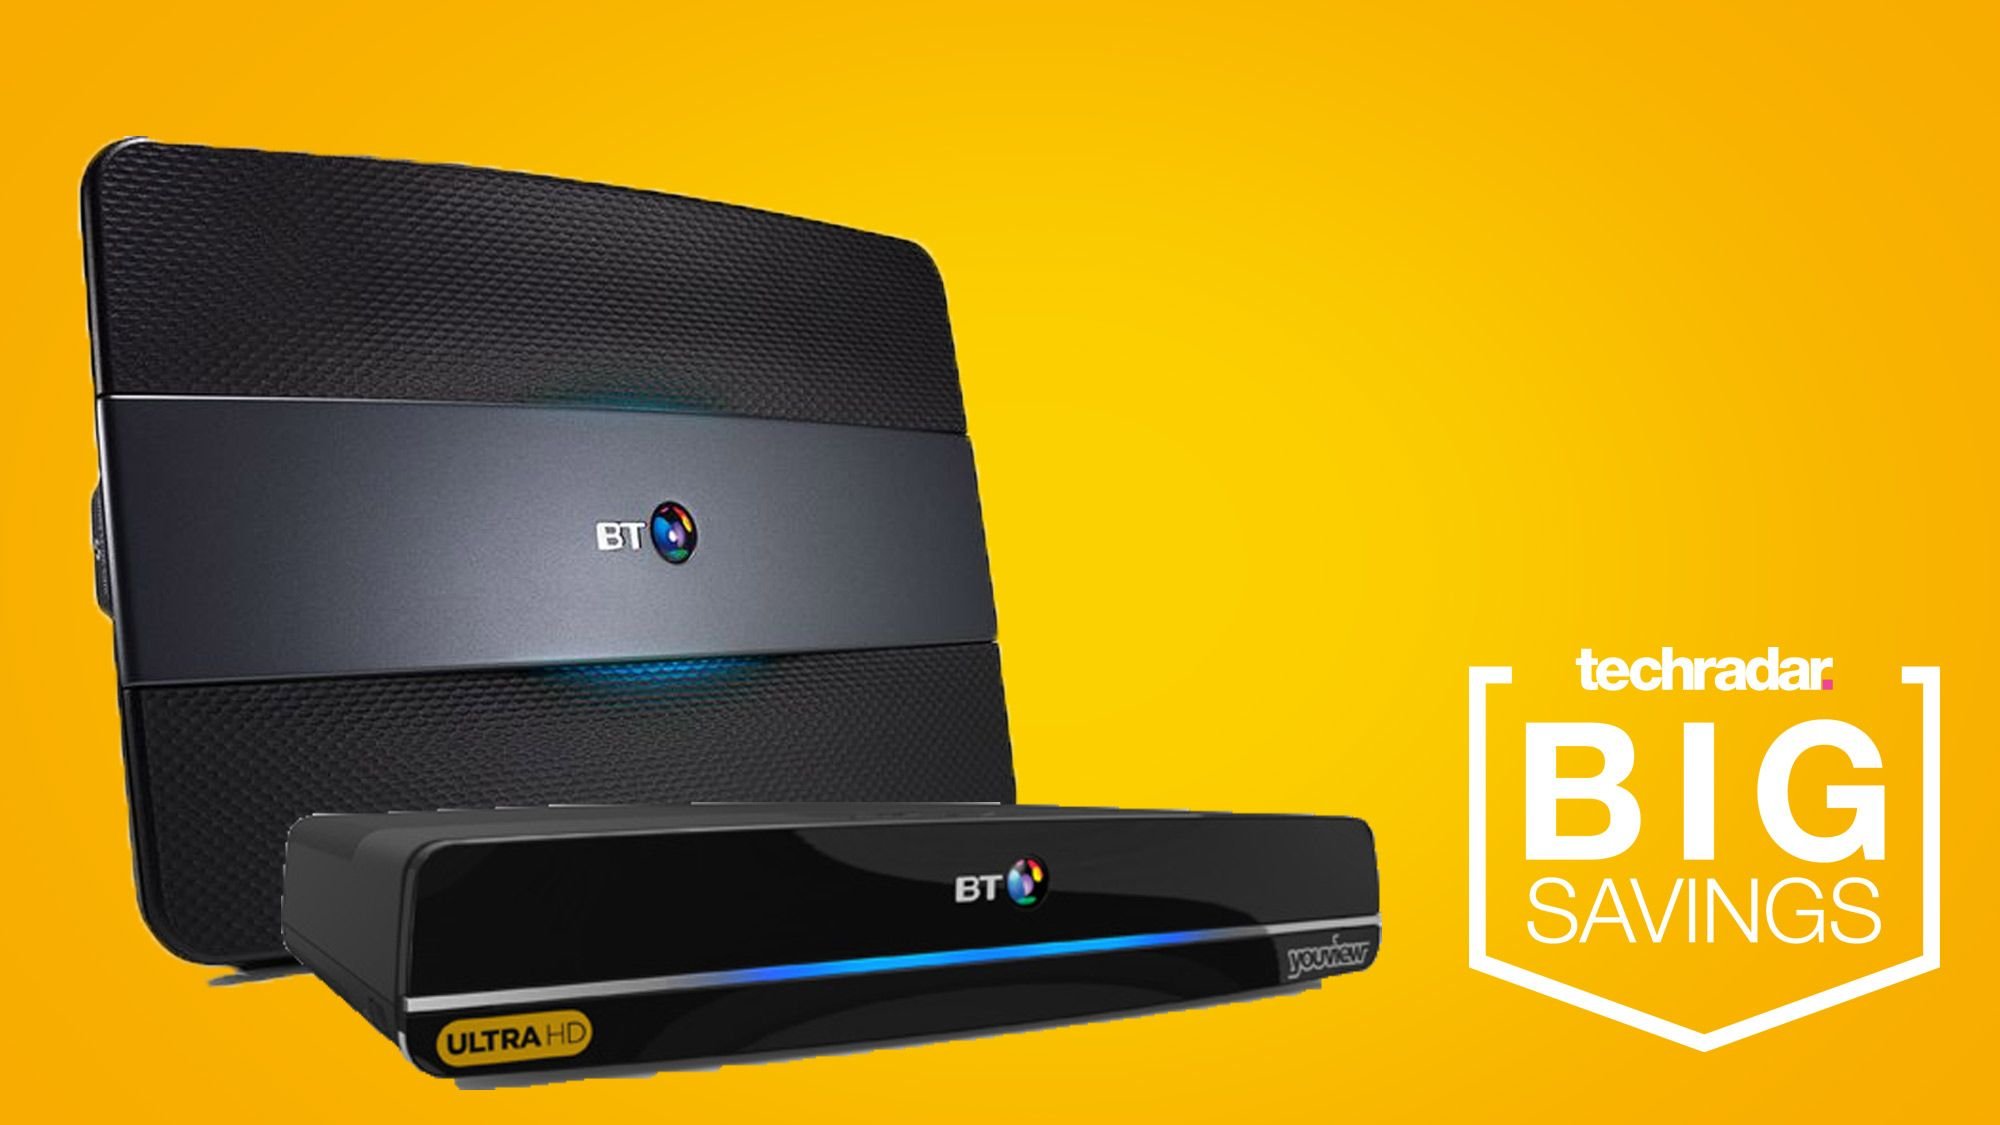 The Best Broadband And Tv Deals In February 2021 Tv Deals Broadband Broadband Deals